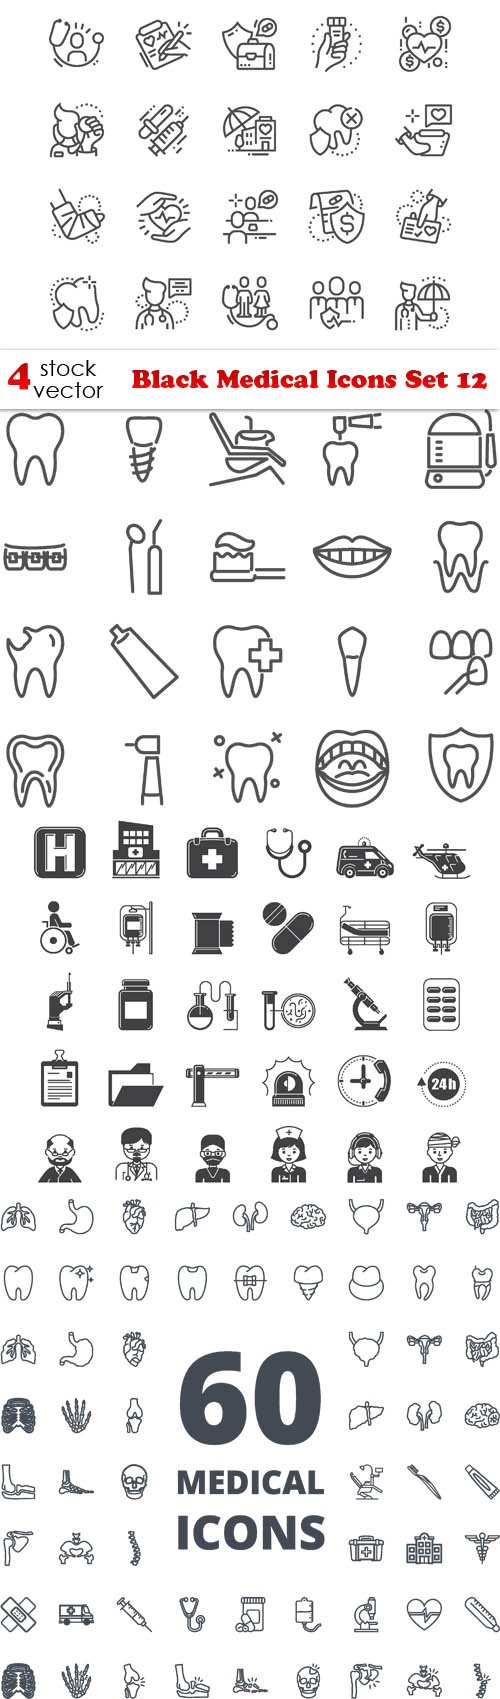 Vectors - Black Medical Icons Set 12